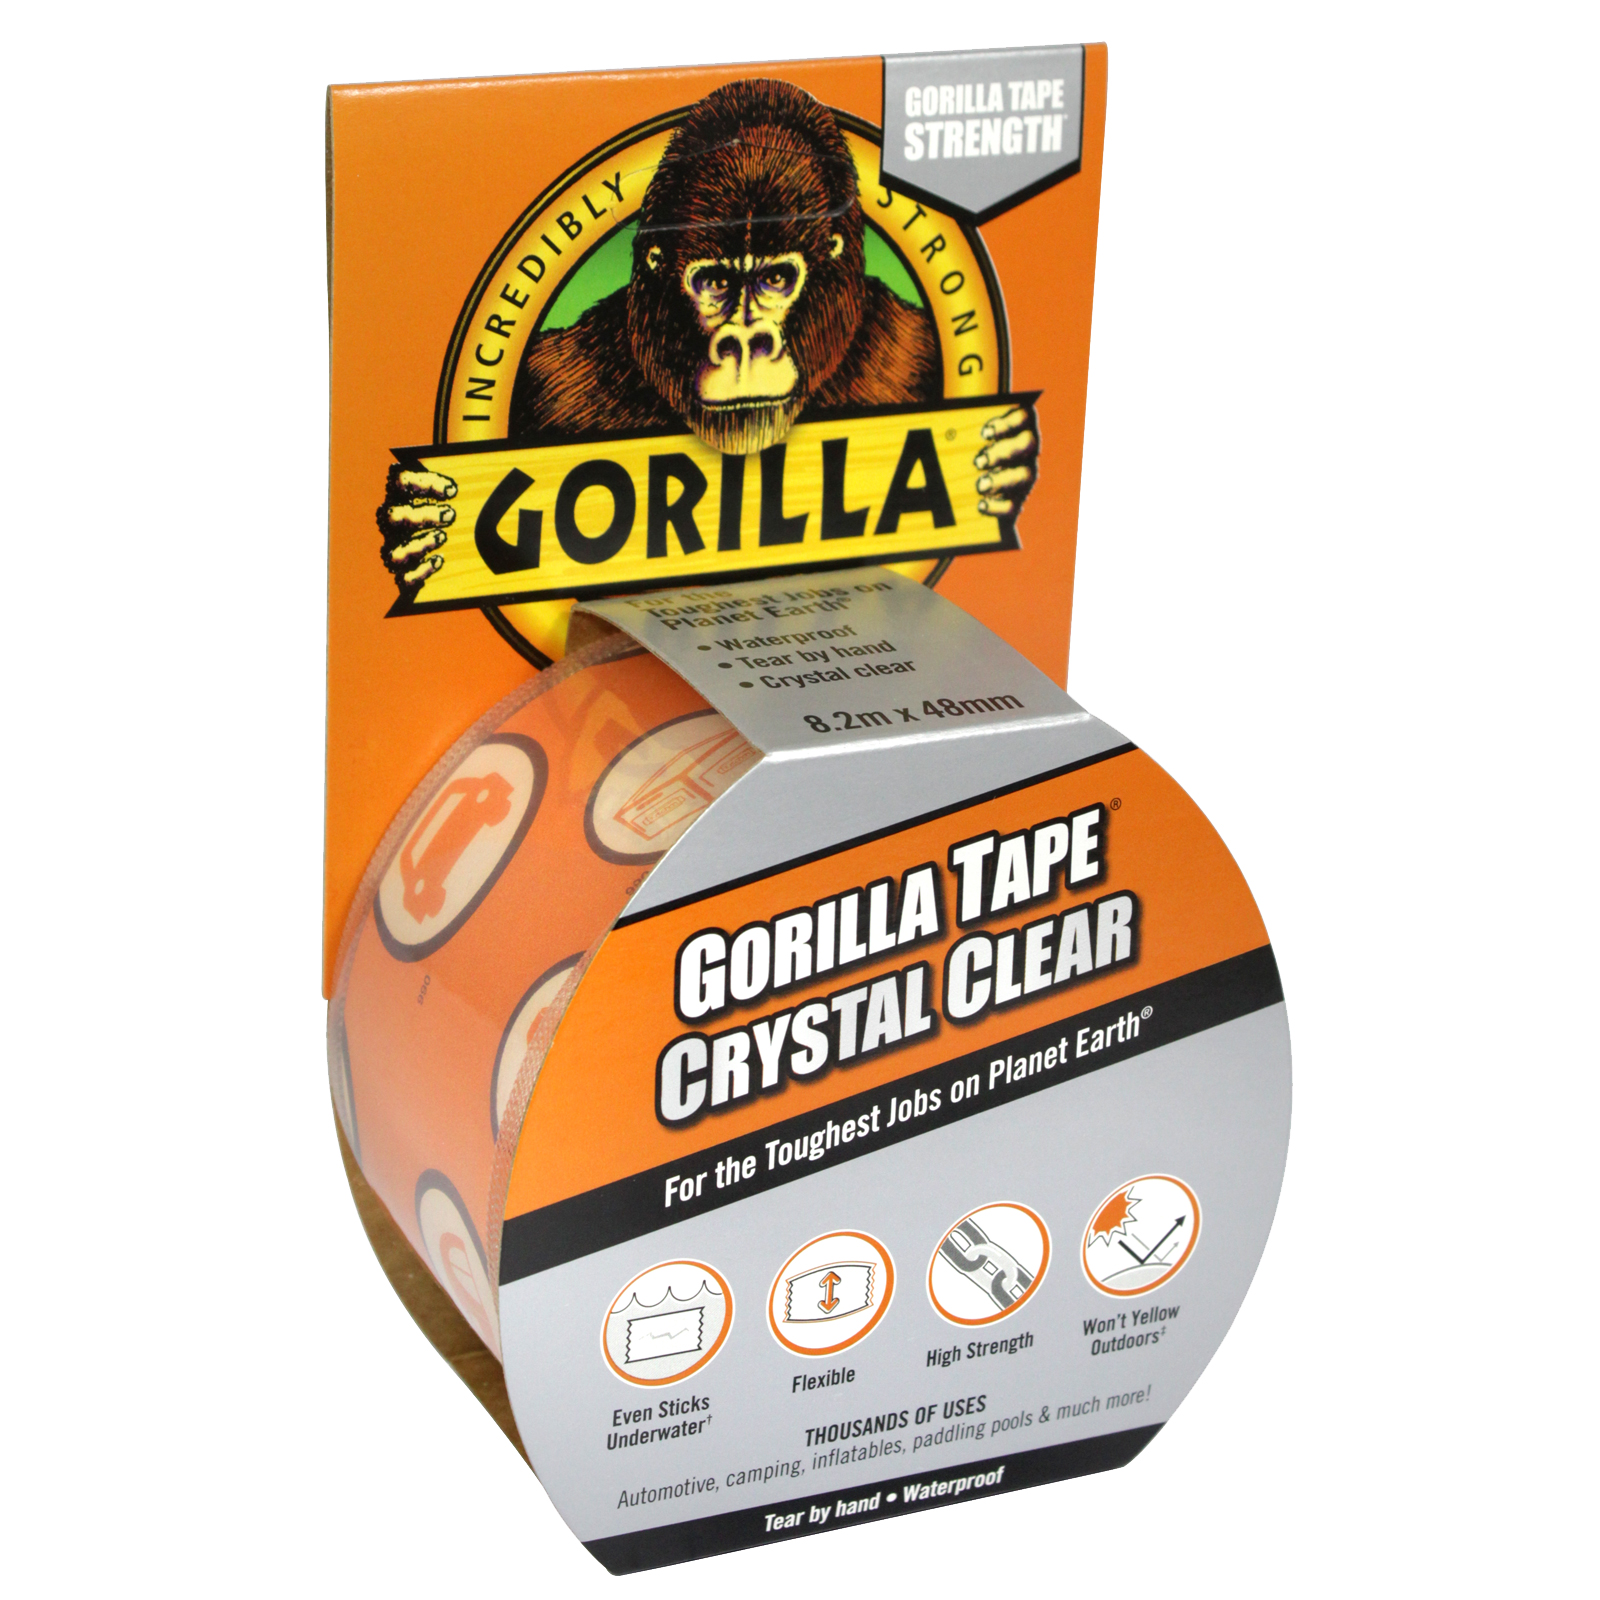 GORILLA TAPE 8.2M CRYSTAL CLEAR